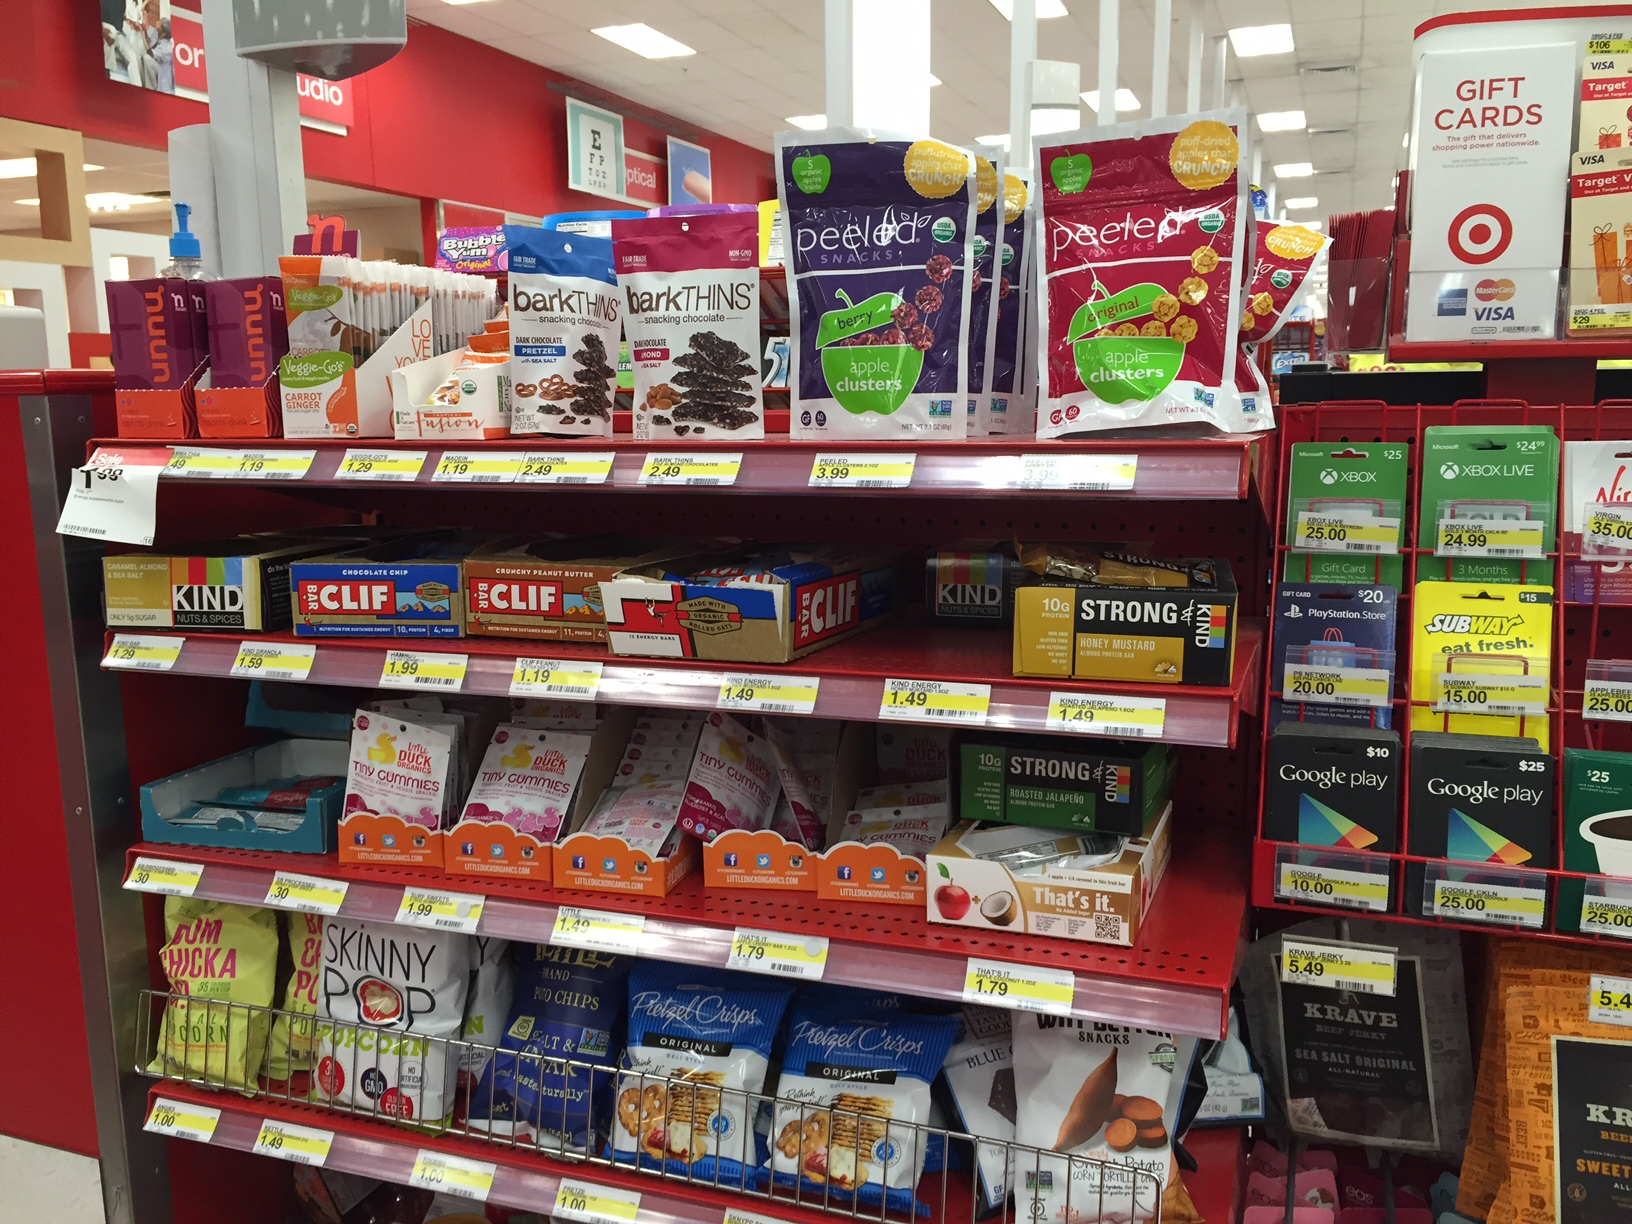 But In A Nod That Some Consumers Still Want The Other Stuff They're Used  To, The Bottom Three Shelves Were Full Of The More Typical Offerings Such  As